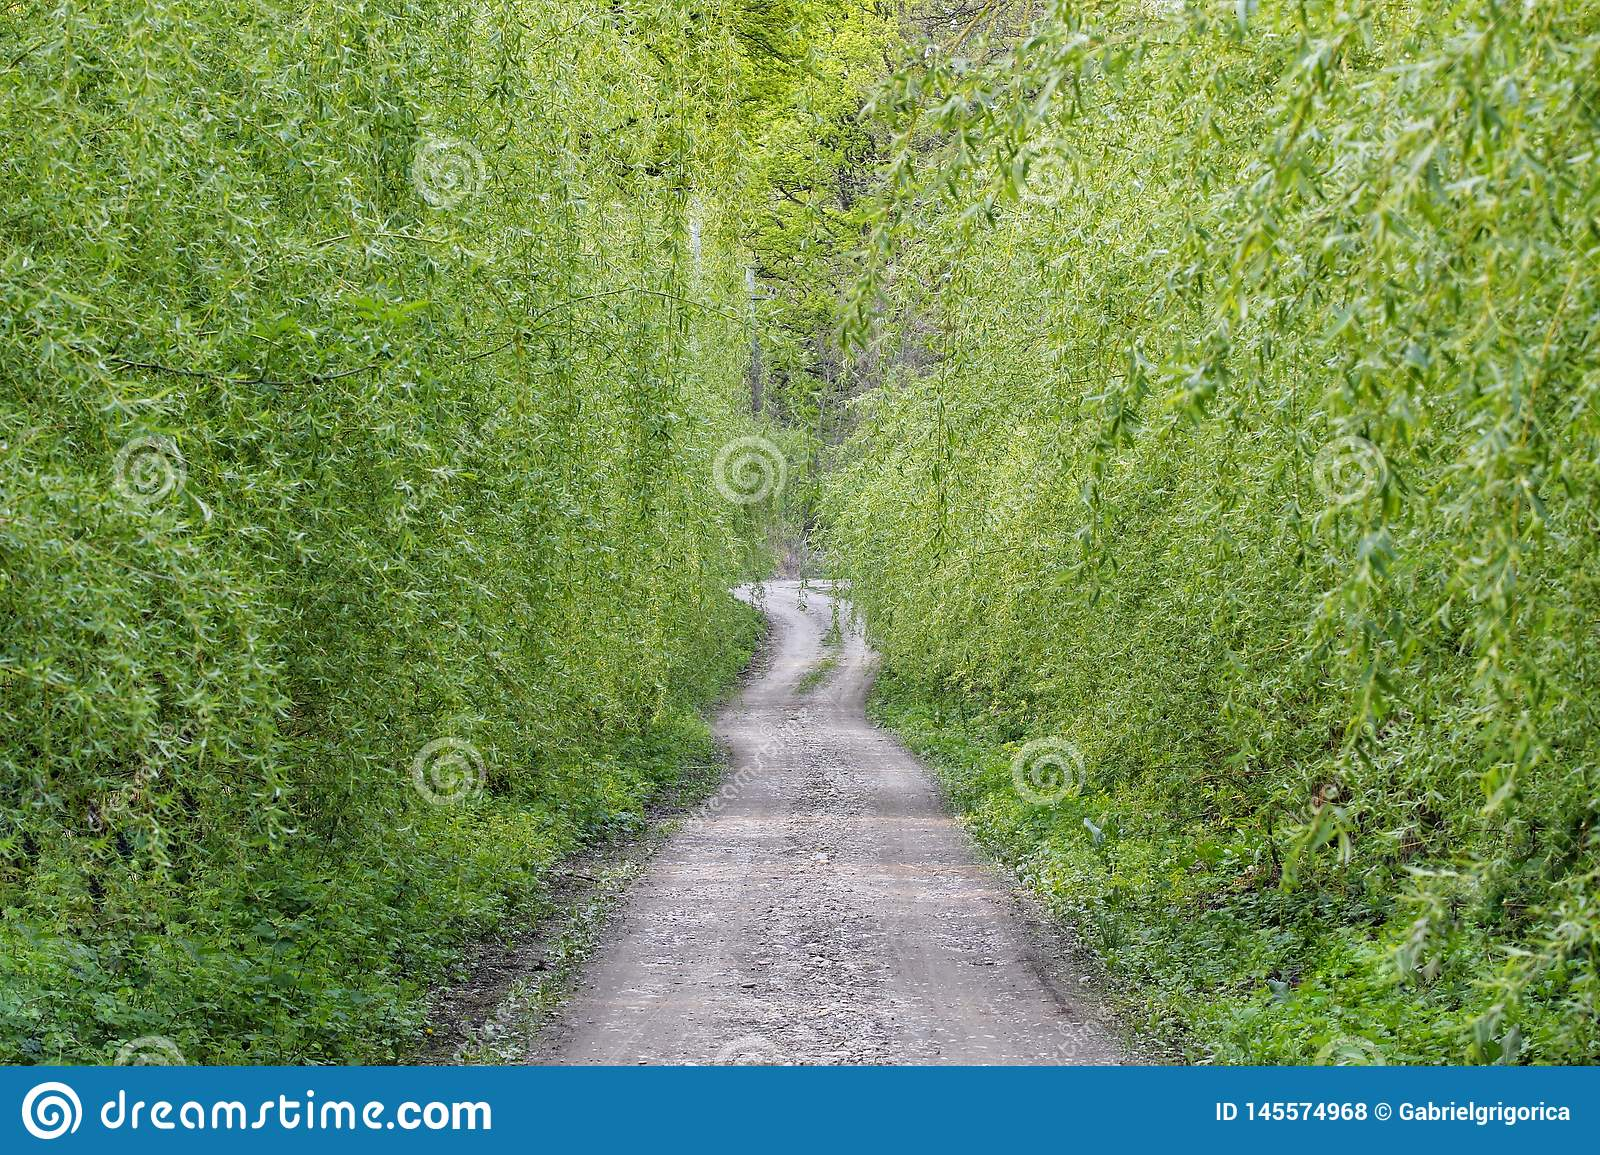 Streets Of Willow >> Cobbled Streets Among Willow Trees Stock Photo Image Of